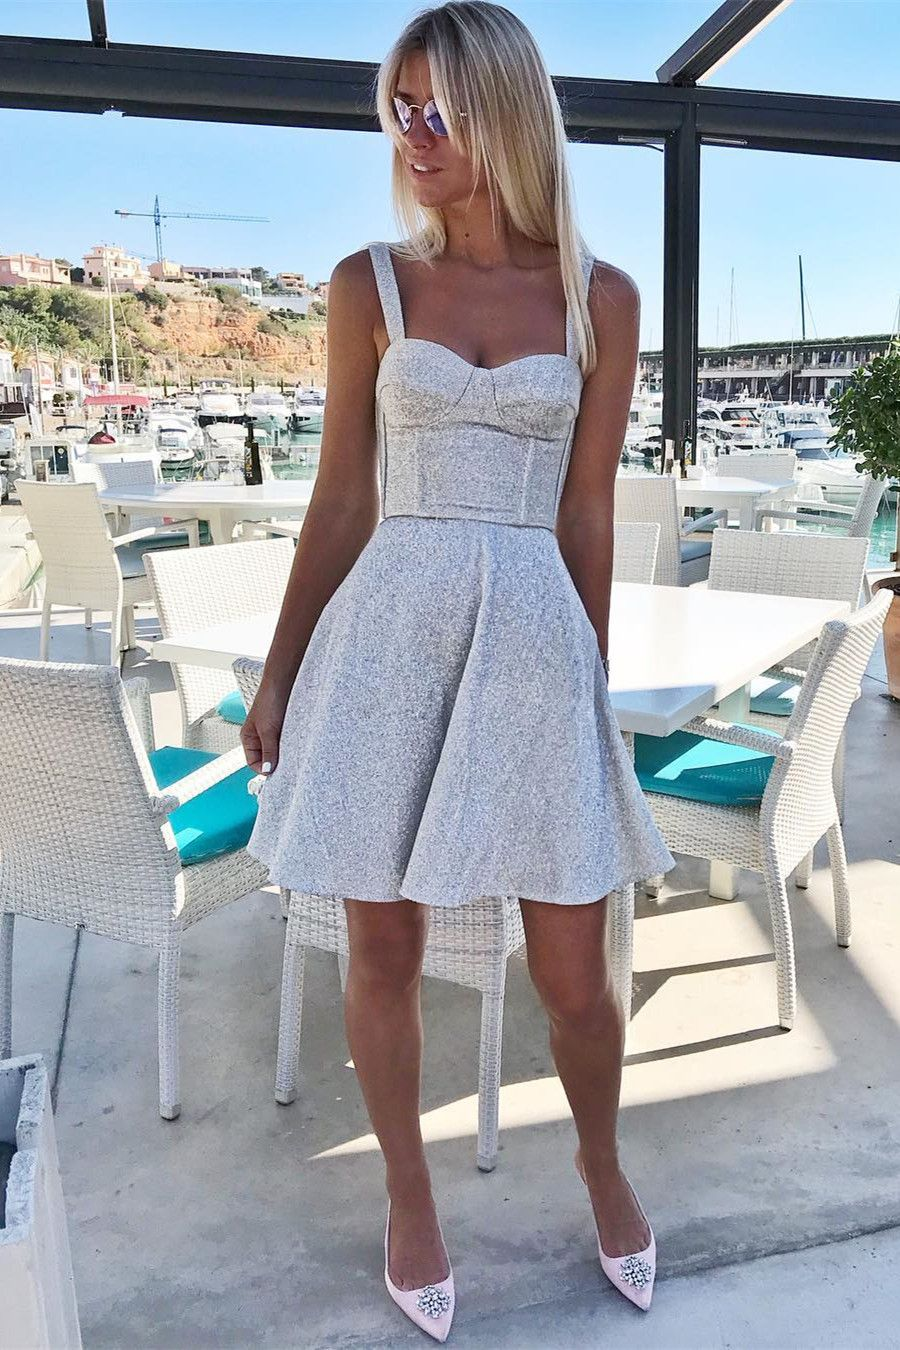 Semi formal dresses for wedding reception  ALine Straps Short Sleeveless Silver Homecoming Party Dresses